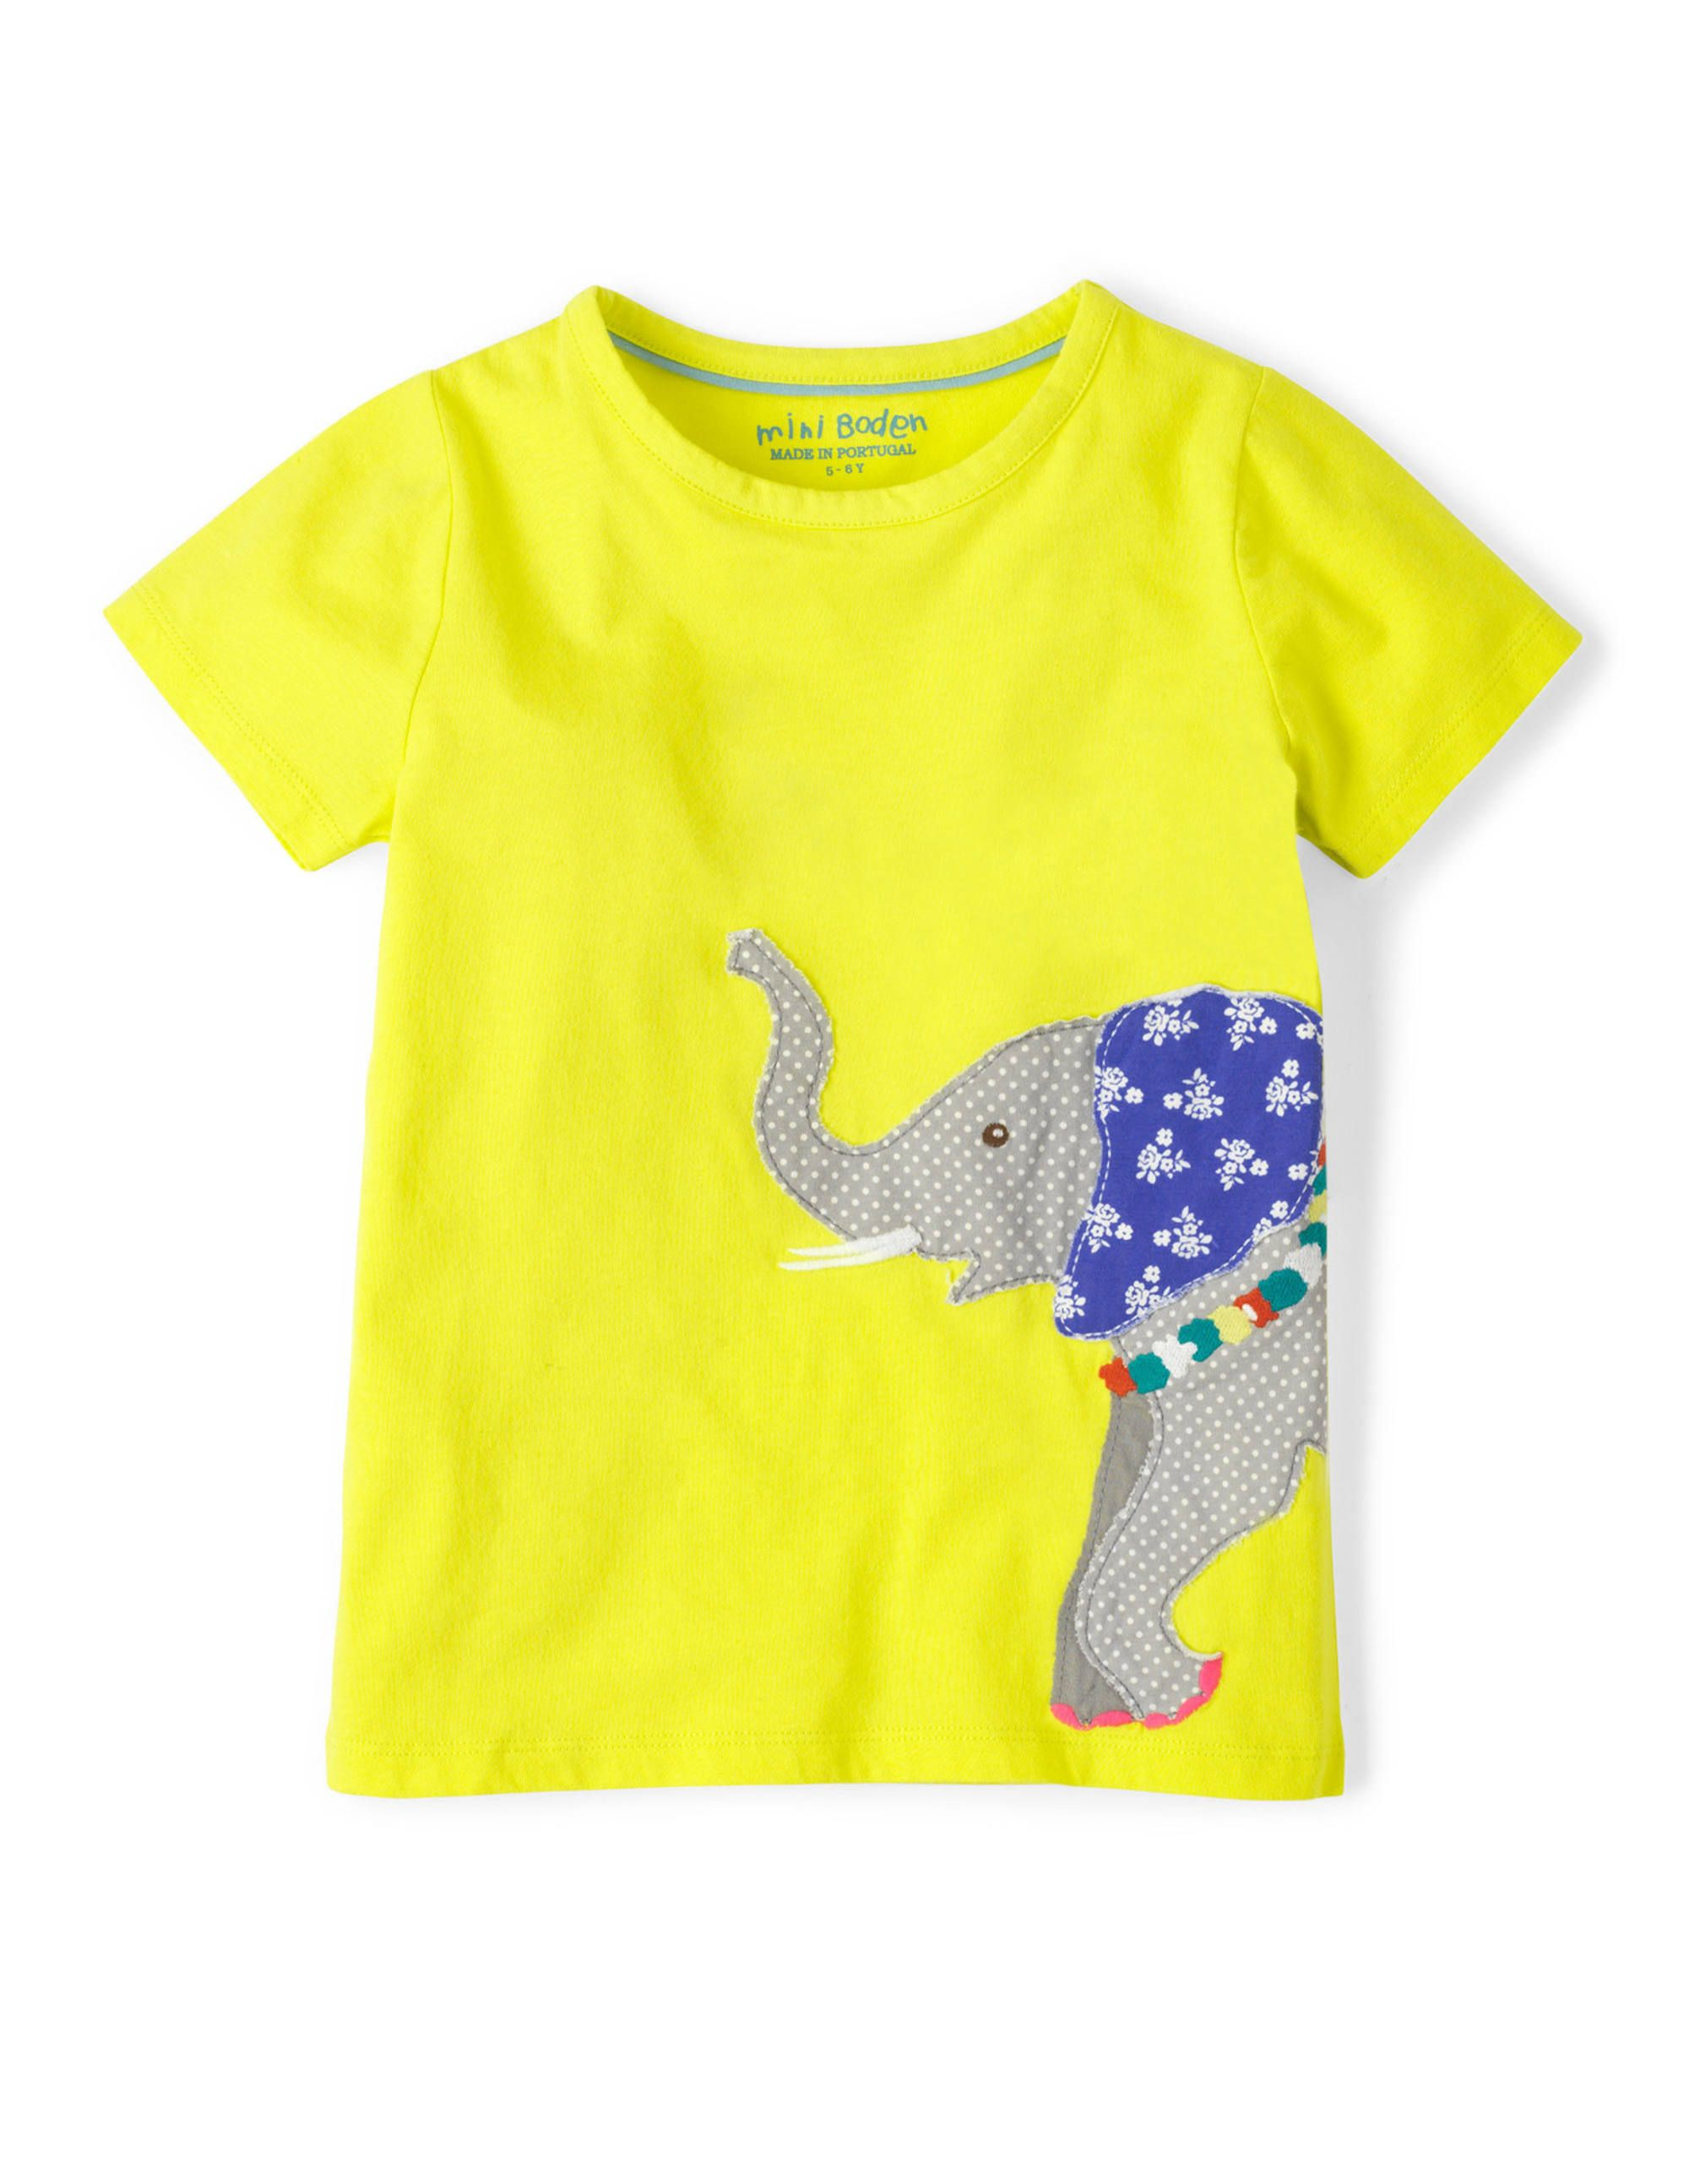 cca51a859 Animals Abroad T-shirt